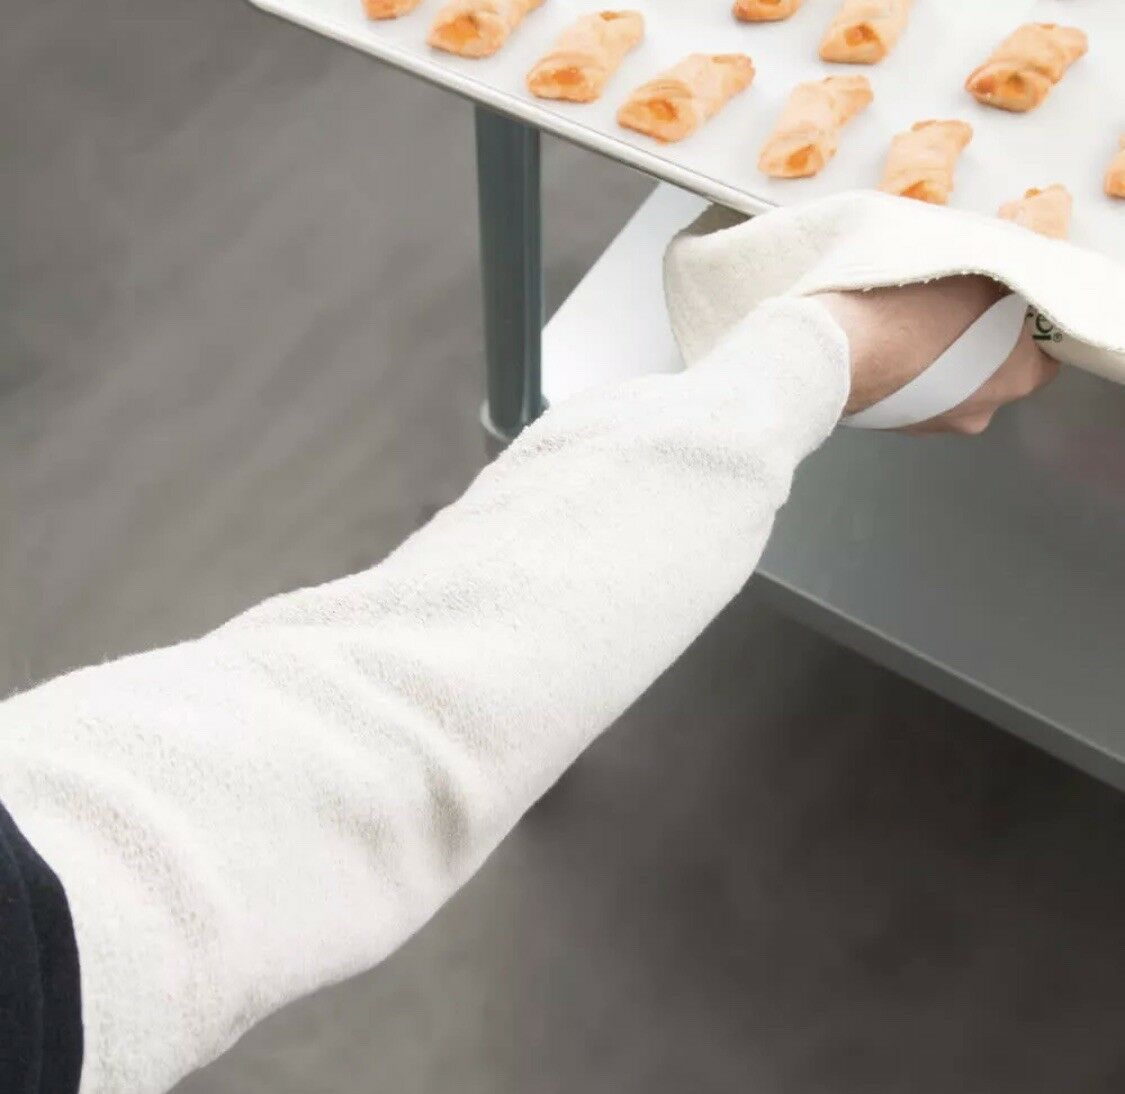 MCR Safety Heat Resistant Sleeve 18 3 Set Cloth For Restaurant Cafeteria Bakery - $12.95